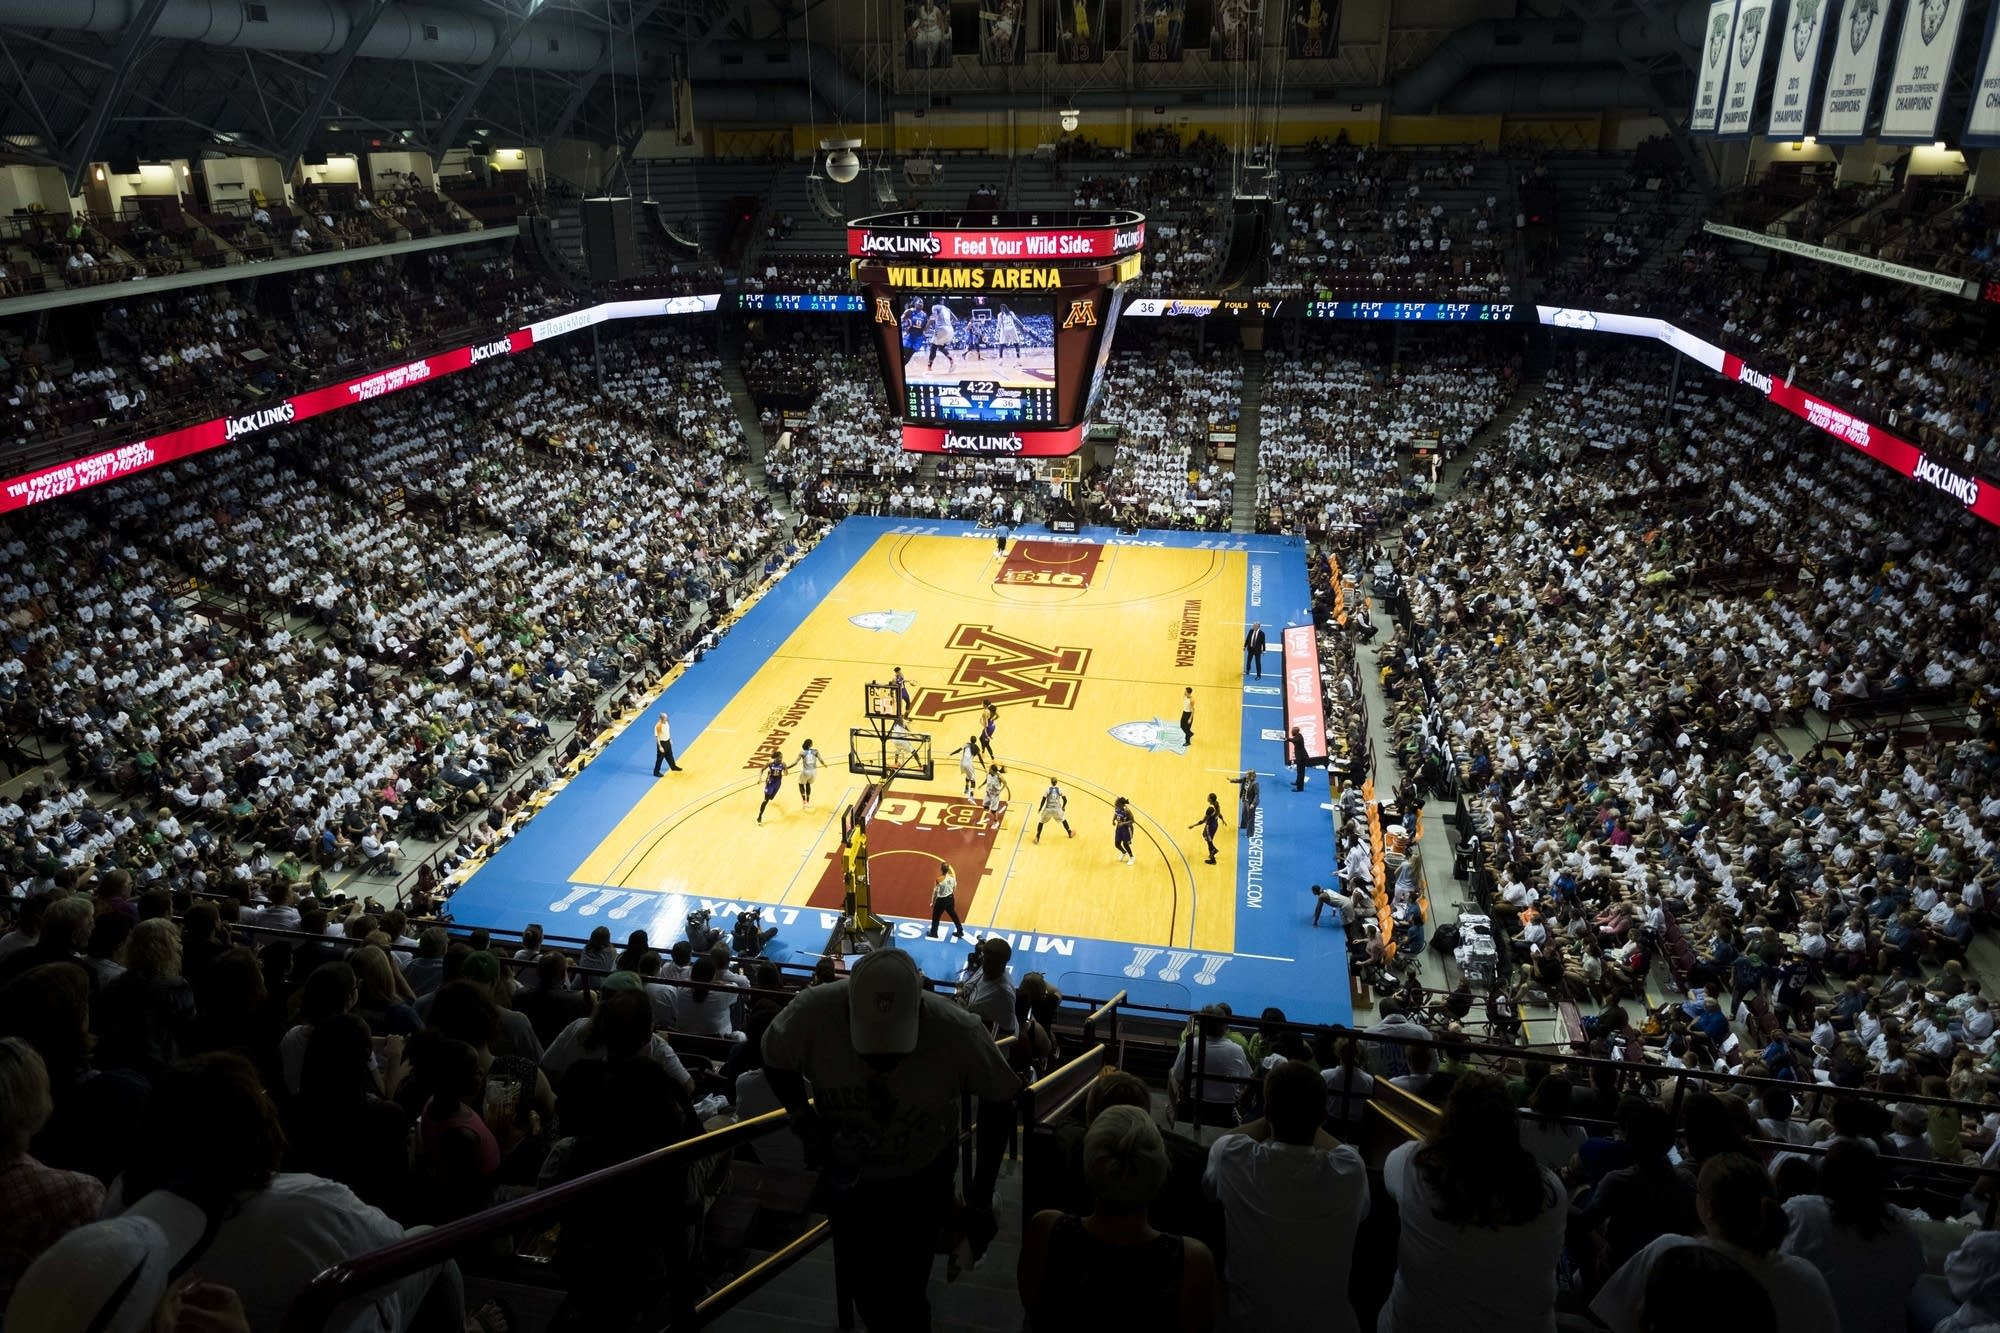 Fans fill Williams Arena at the University of Minnesota.